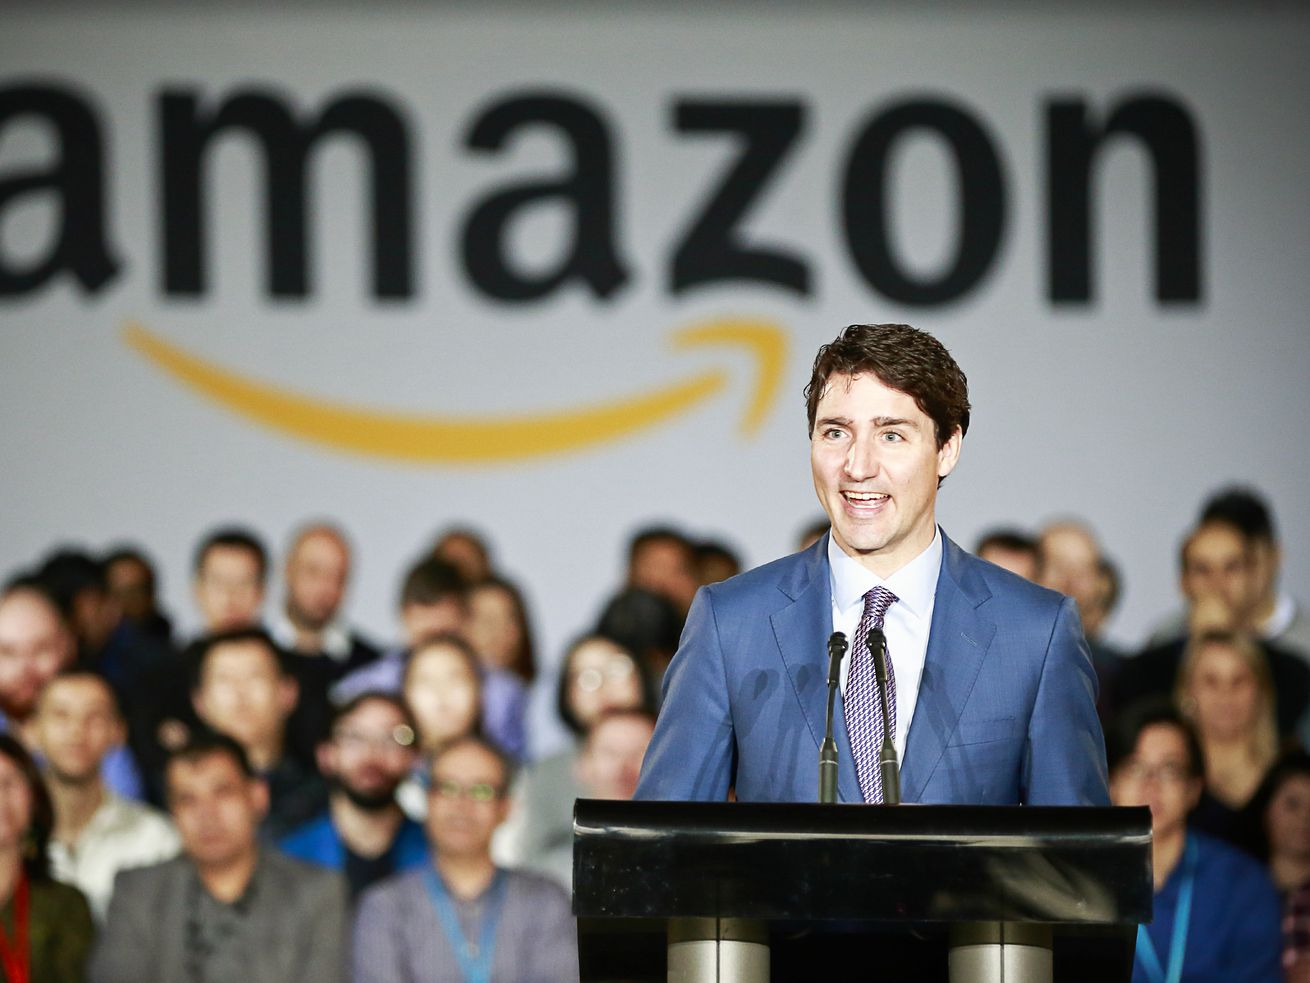 Canada is becoming a tech hub. Thanks, Donald Trump!